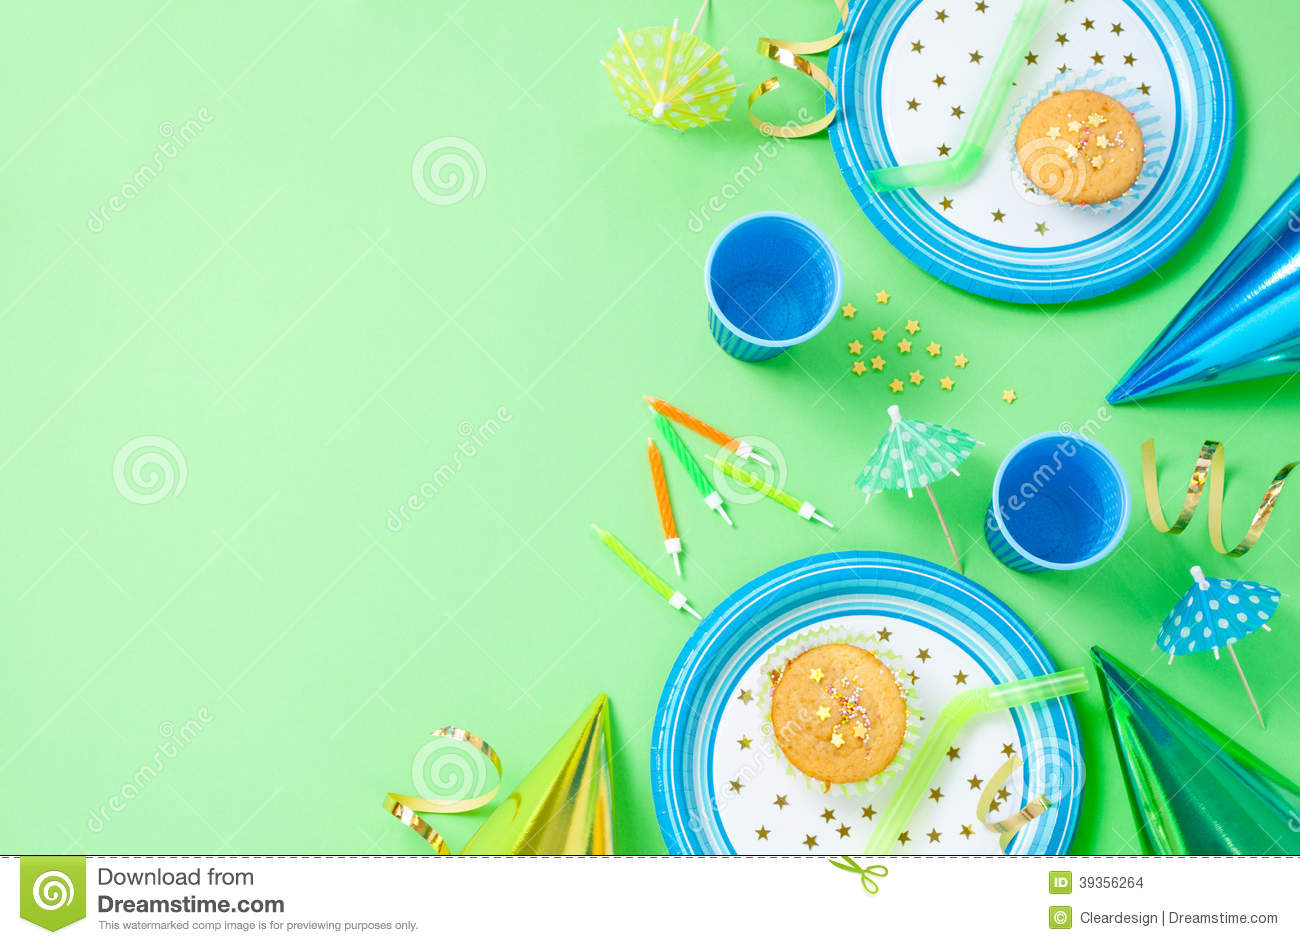 background birthday boy ; boy-birthday-decorations-green-table-setting-above-muffins-drinks-party-gadgets-background-layout-free-text-39356264